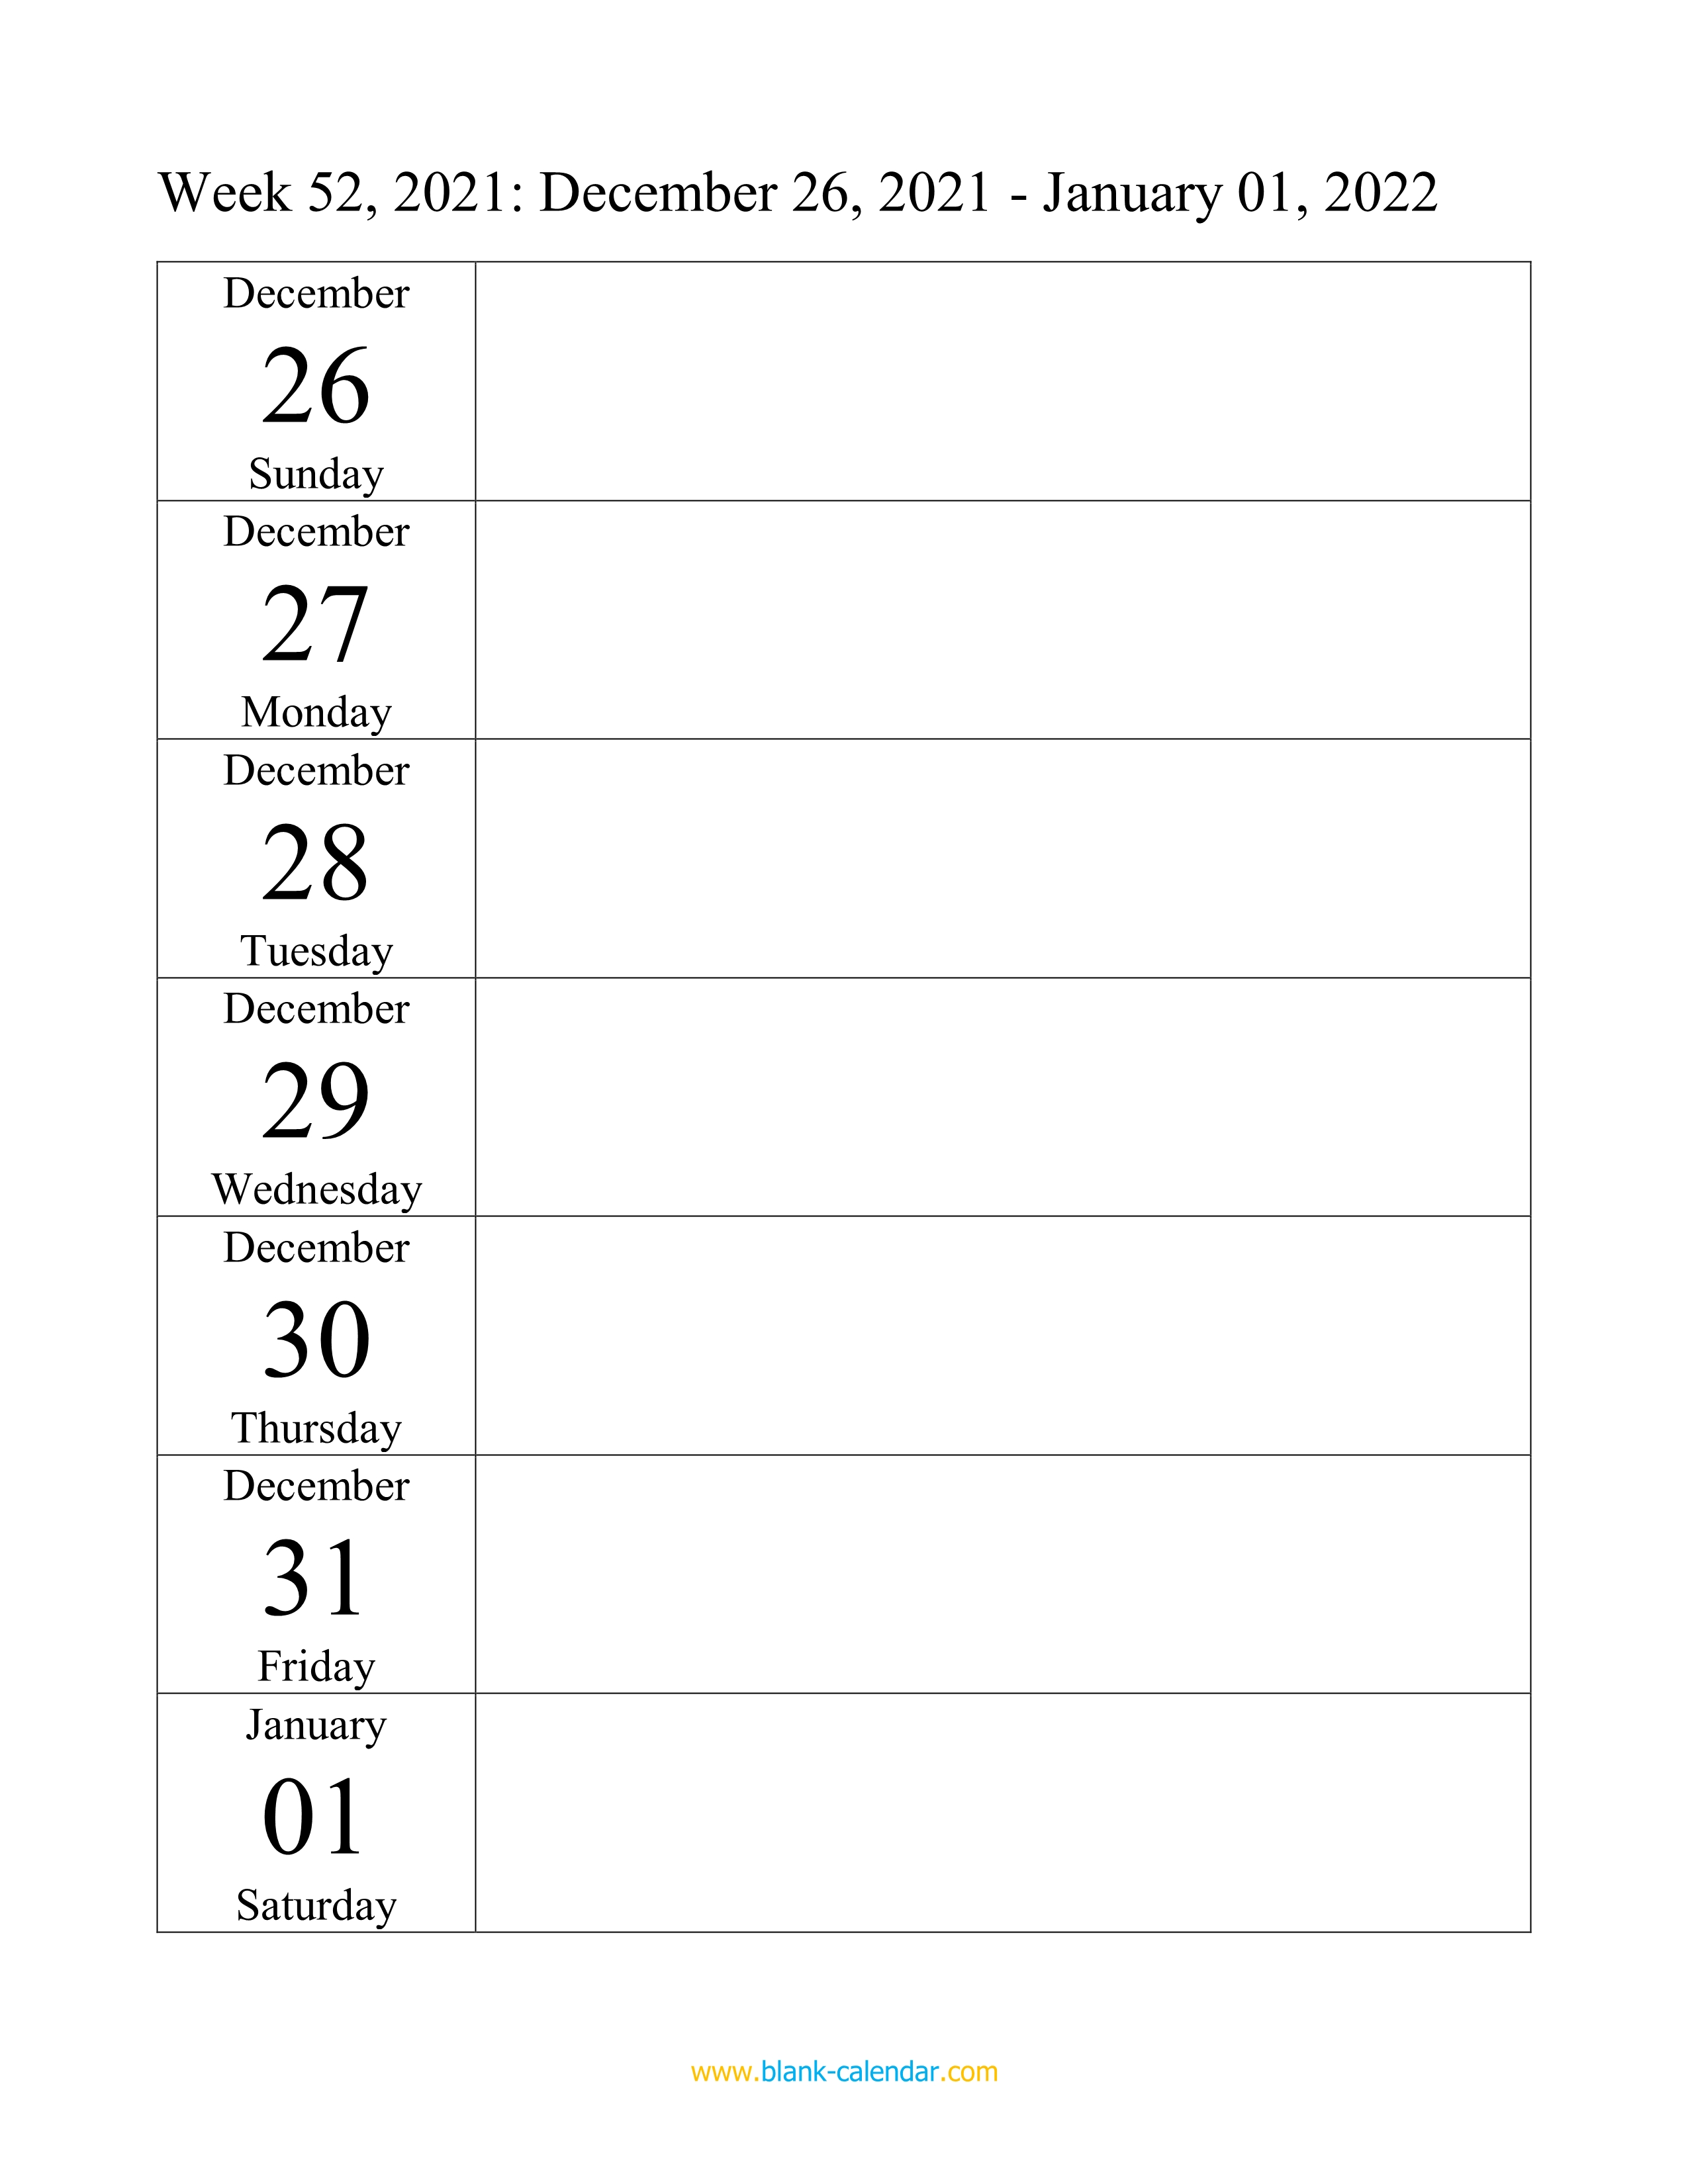 Download full of 12 months of free printable 2022 monthly calendar with holidays and observances. Weekly Calendar 2022 (WORD, EXCEL, PDF)